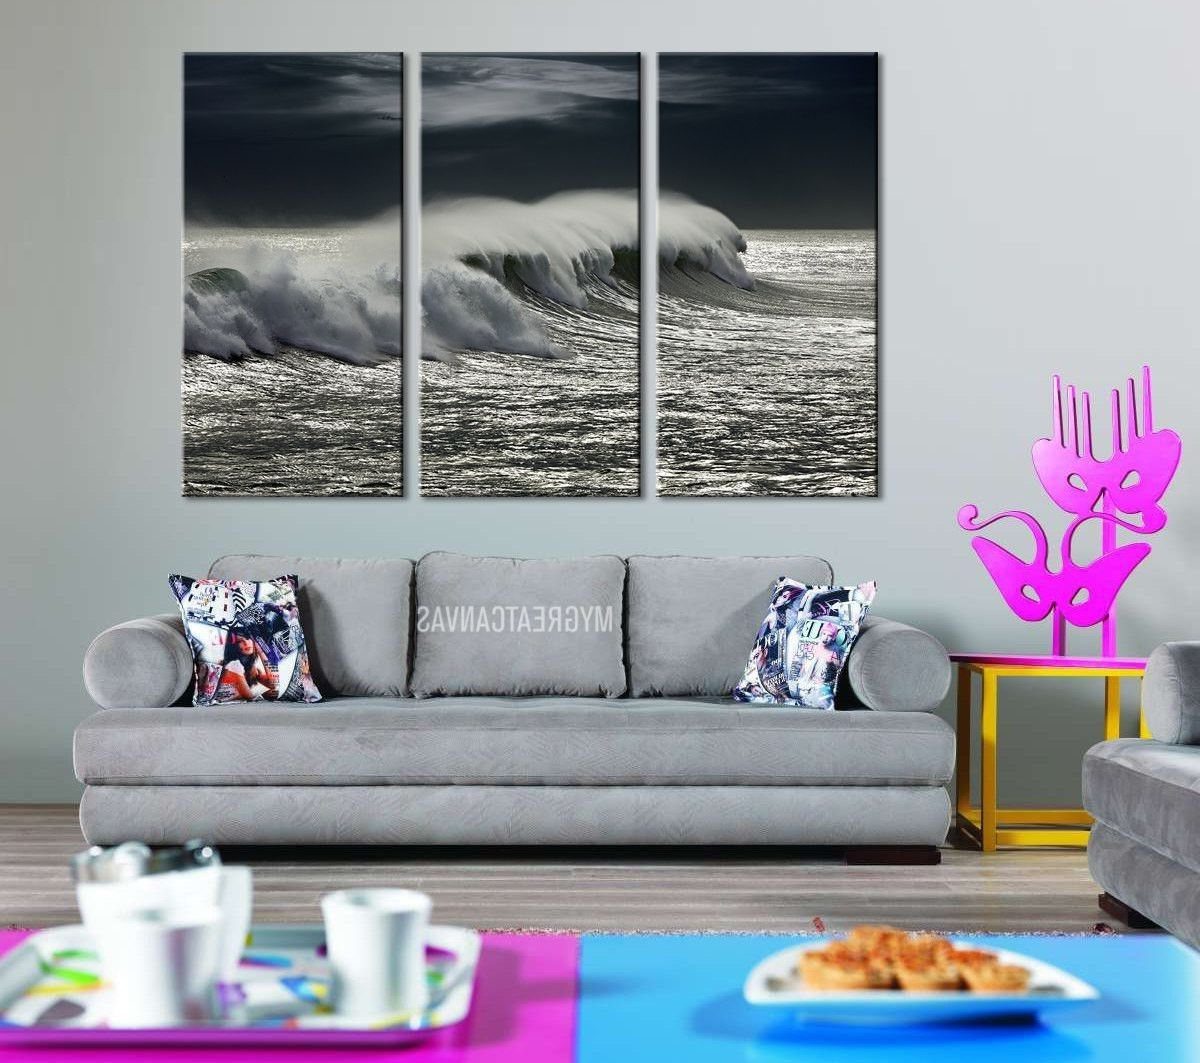 Most Recently Released Large White Wall Art Regarding Large Wall Art Giclee 3 Panel Canvas Print – Black And White Ocean (View 8 of 15)